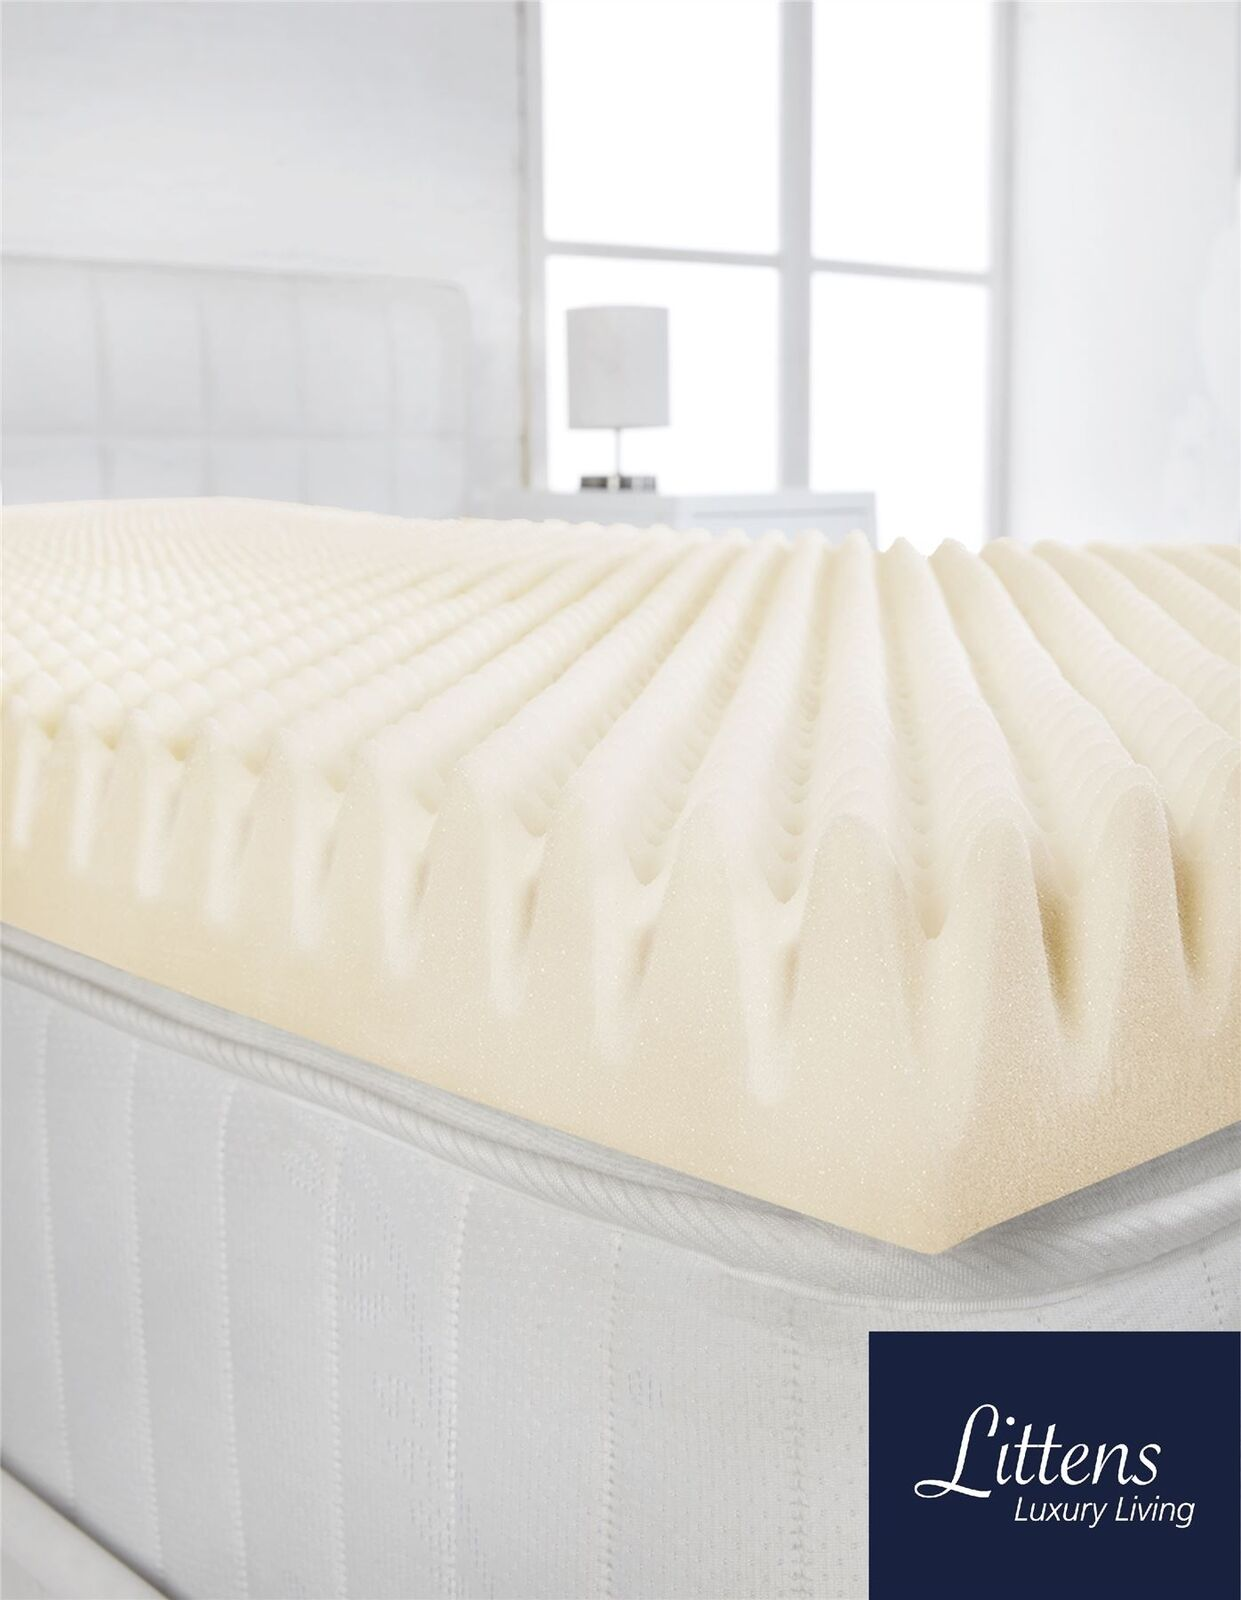 4  Extra Deep Superking Bed Memory Foam Mattress Topper Profile, Egg Shell Crate